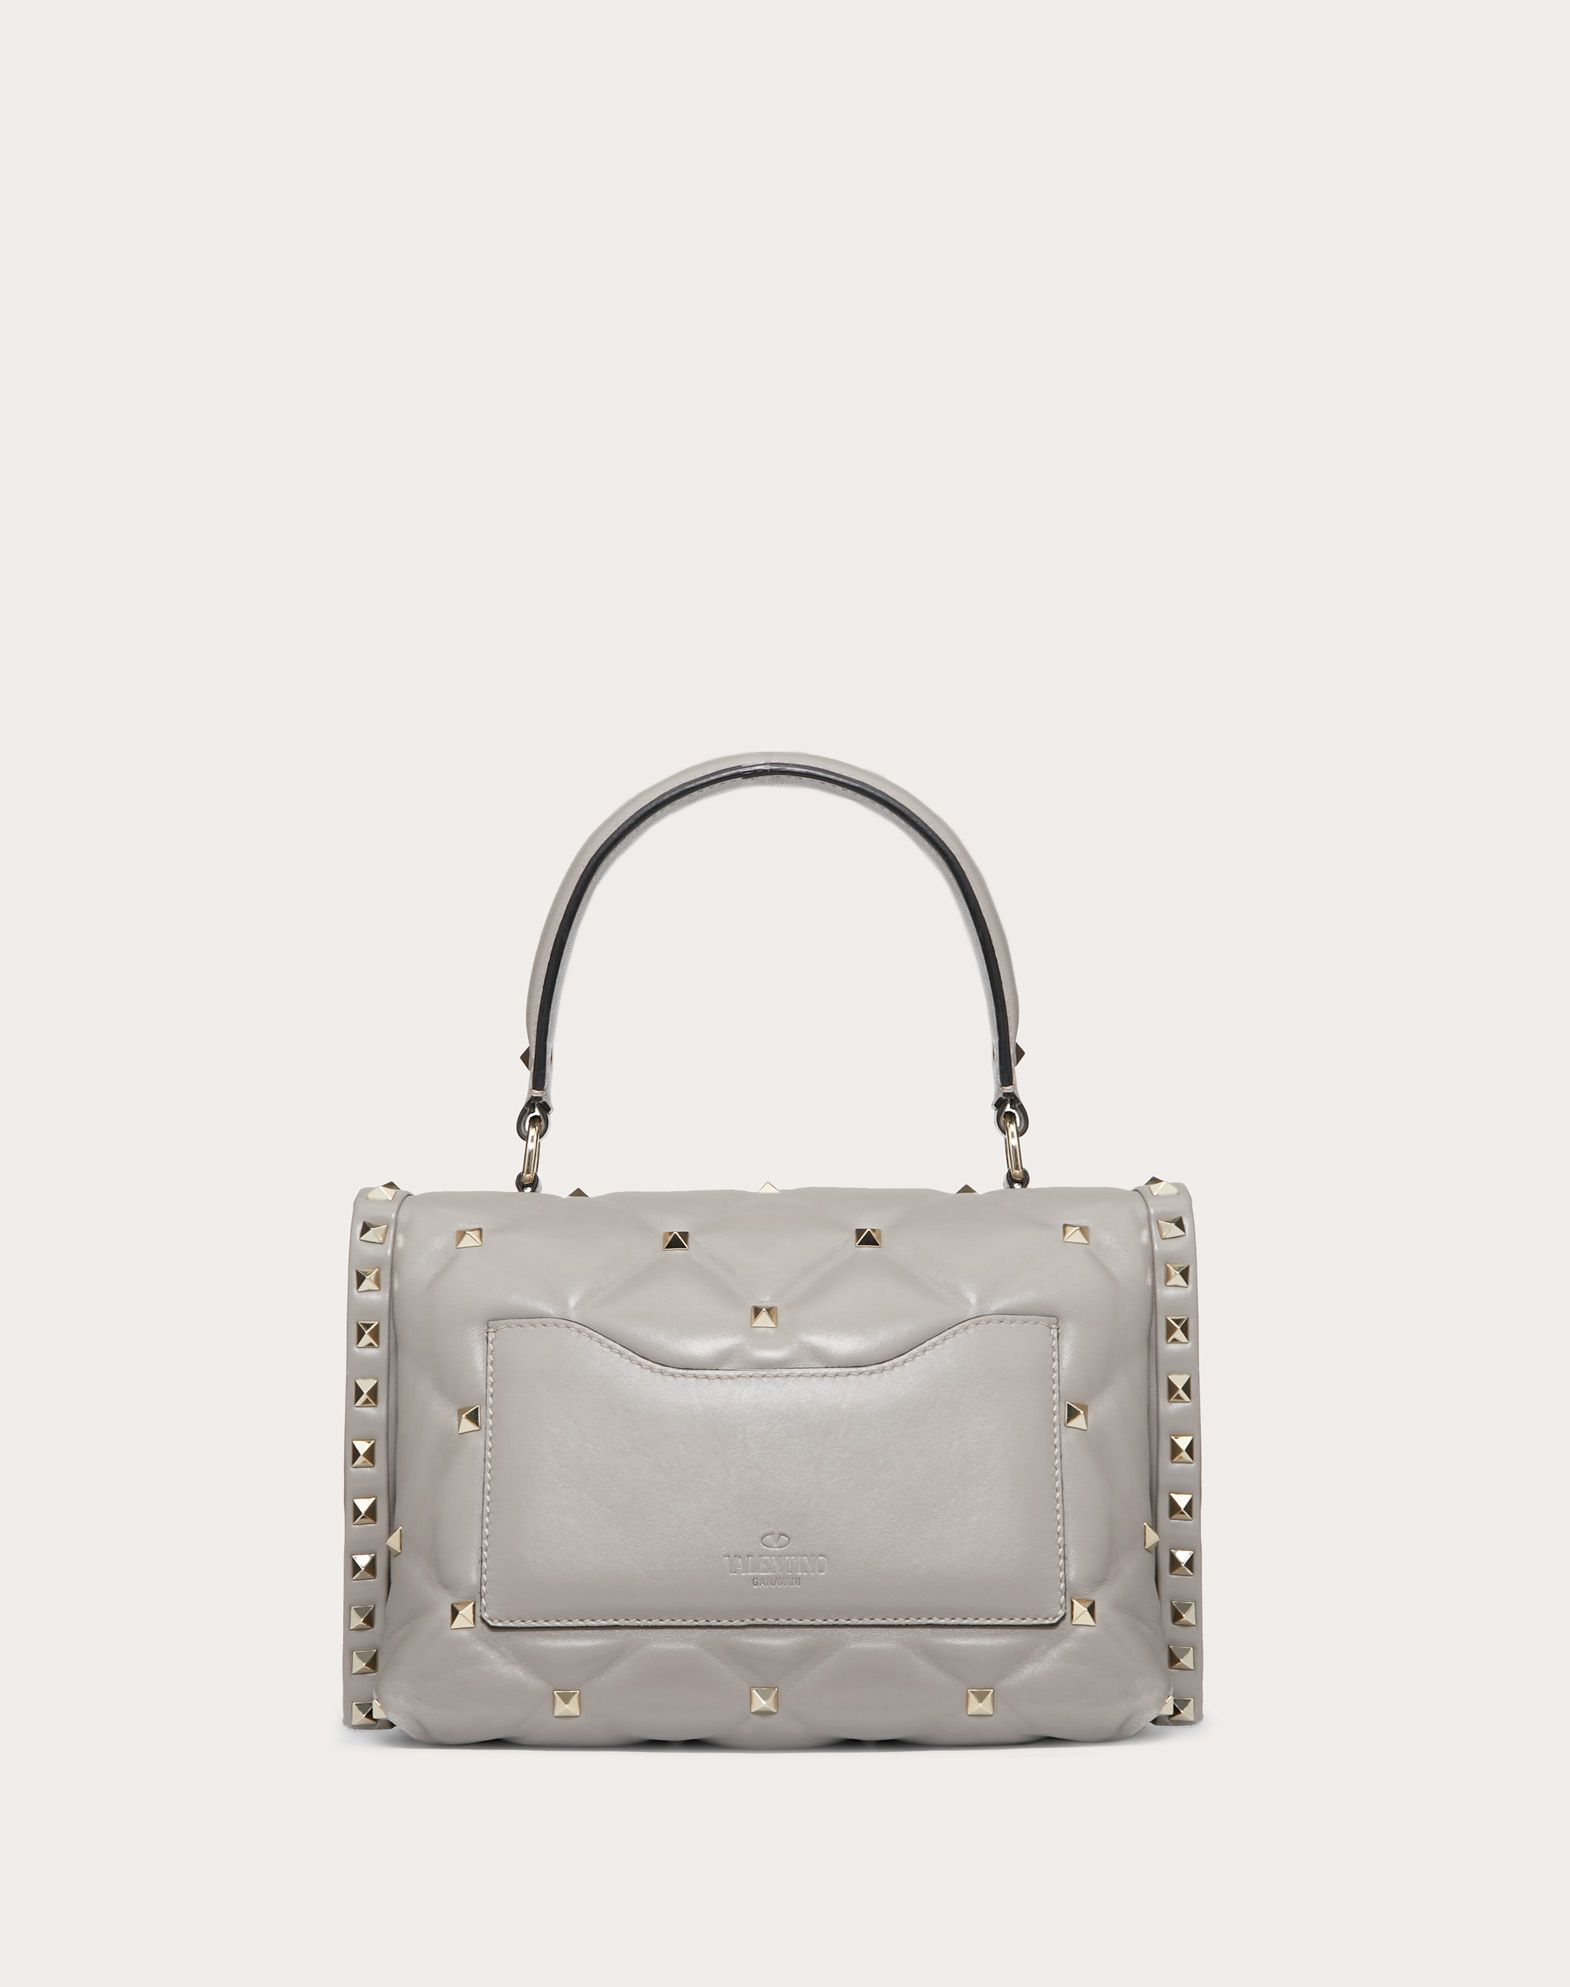 VALENTINO GARAVANI Candystud Top Handle Bag HANDBAG D d